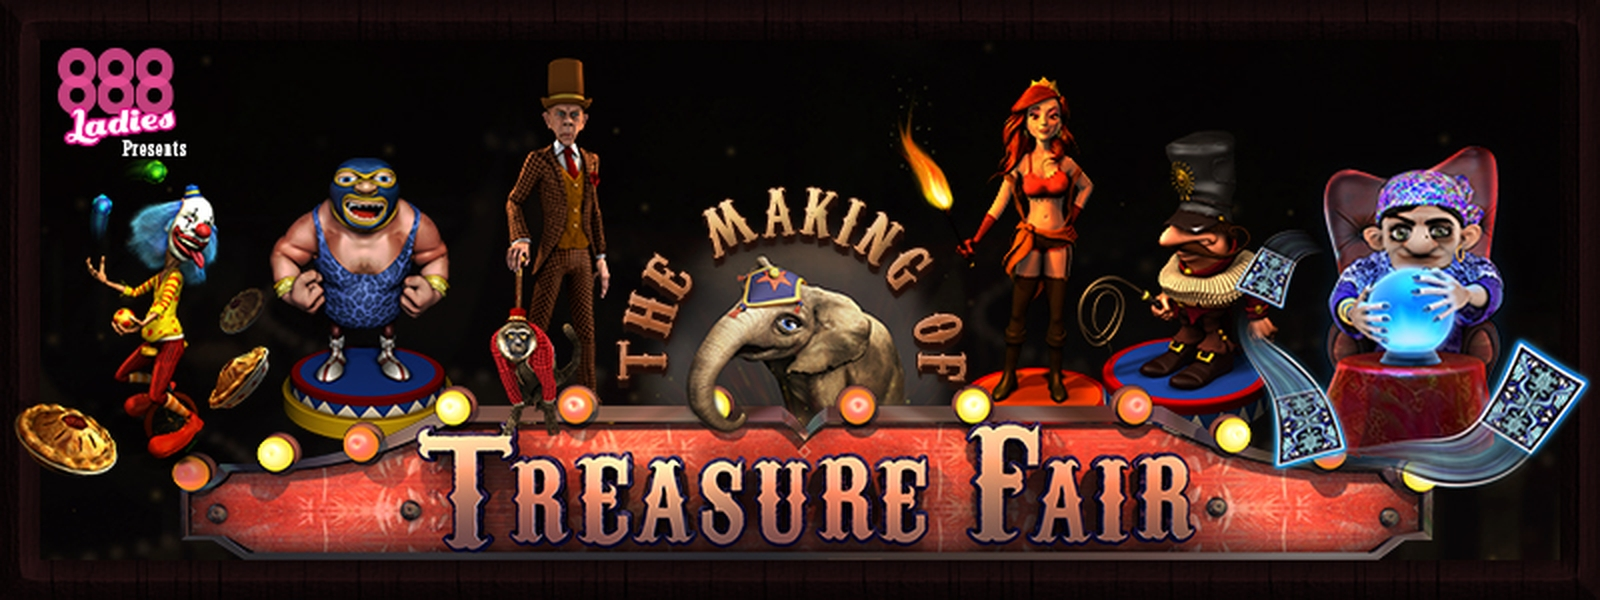 The Treasure Fair Online Slot Demo Game by 888 Gaming